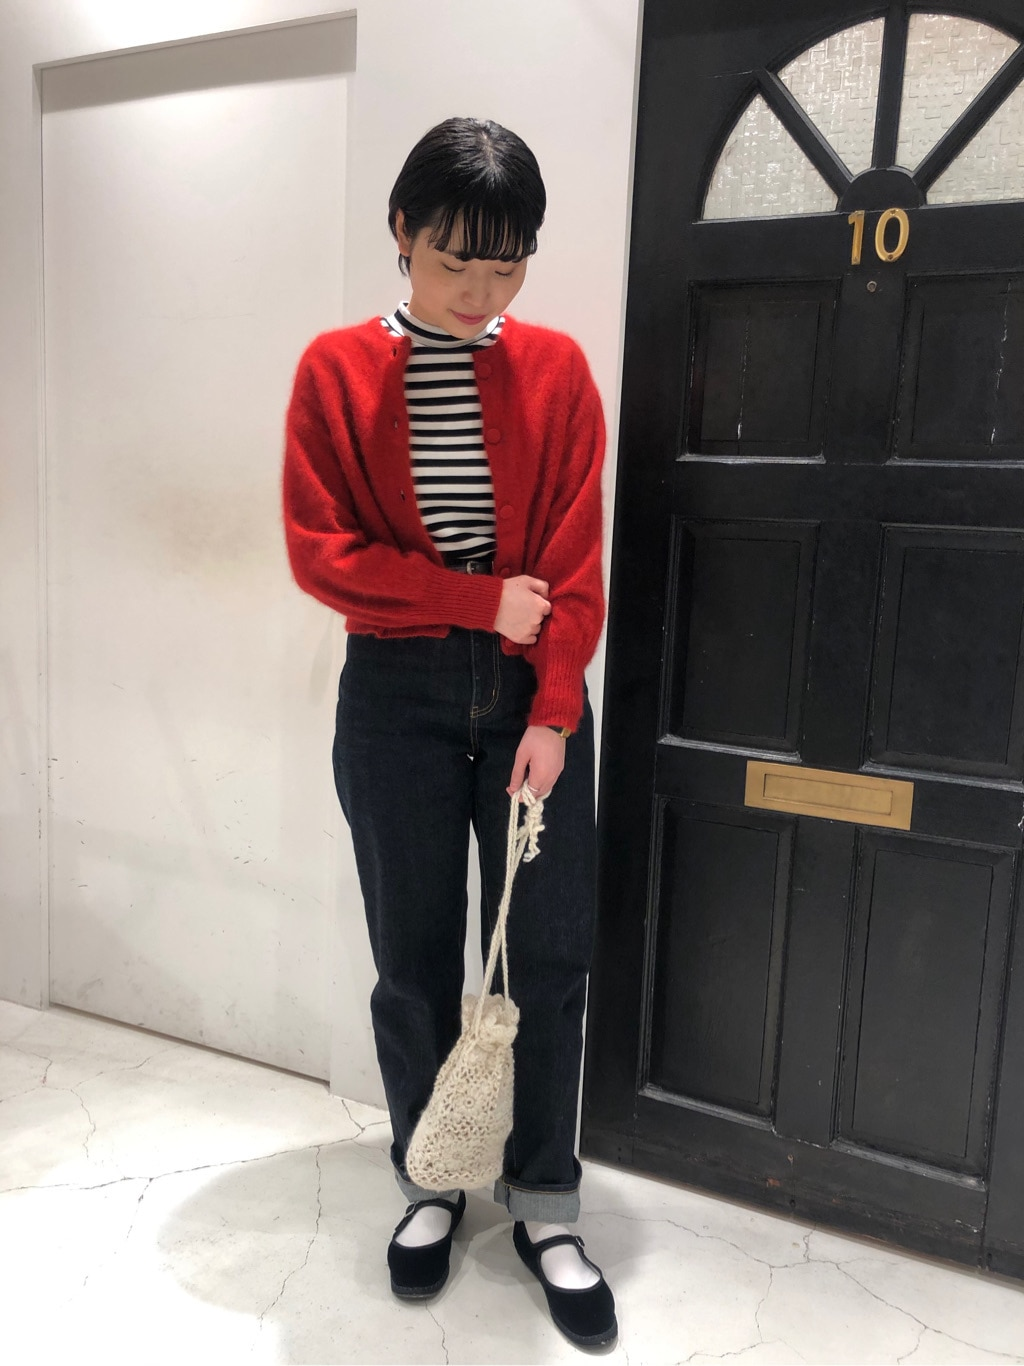 Dot and Stripes CHILD WOMAN ルクアイーレ 身長:165cm 2020.09.23